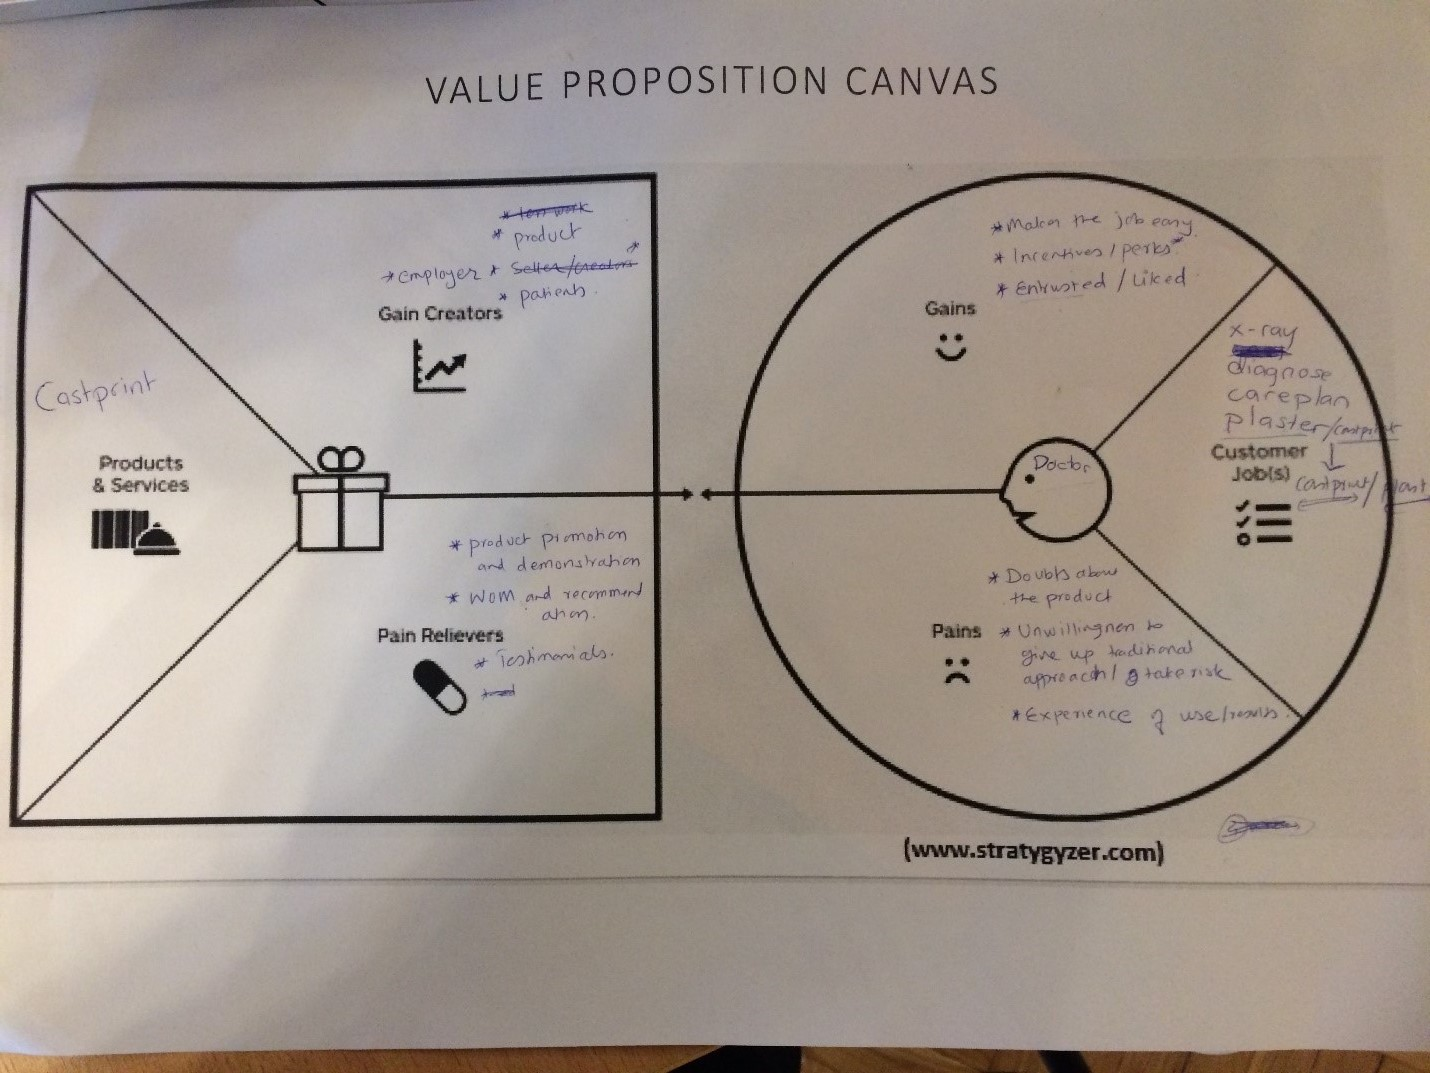 The pictures is our value proposition canvas from the doctor´s perspective.